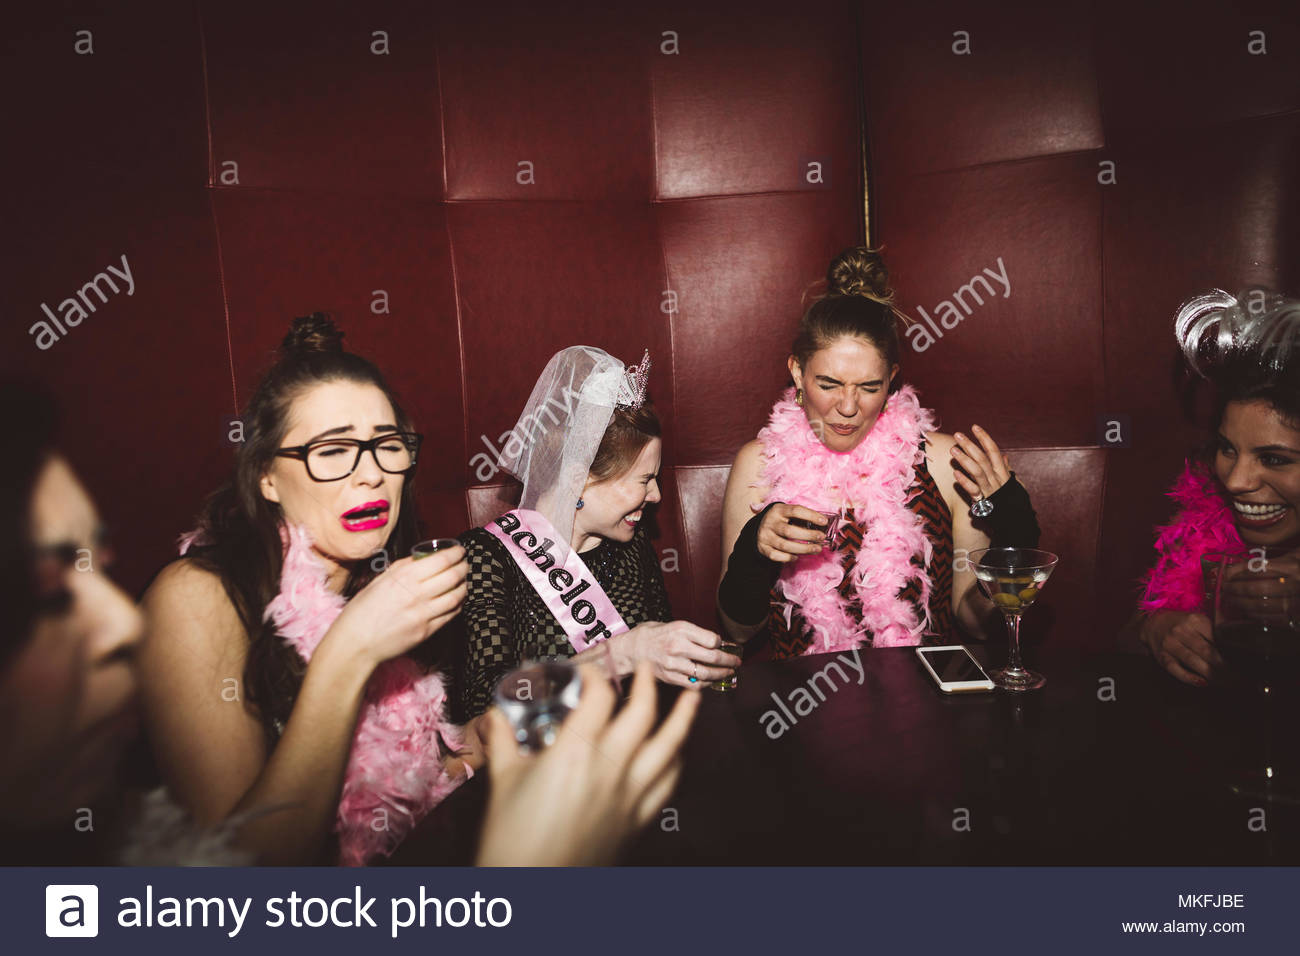 Young female millennial friends taking shots at bachelorette party at nightclub - Stock Image